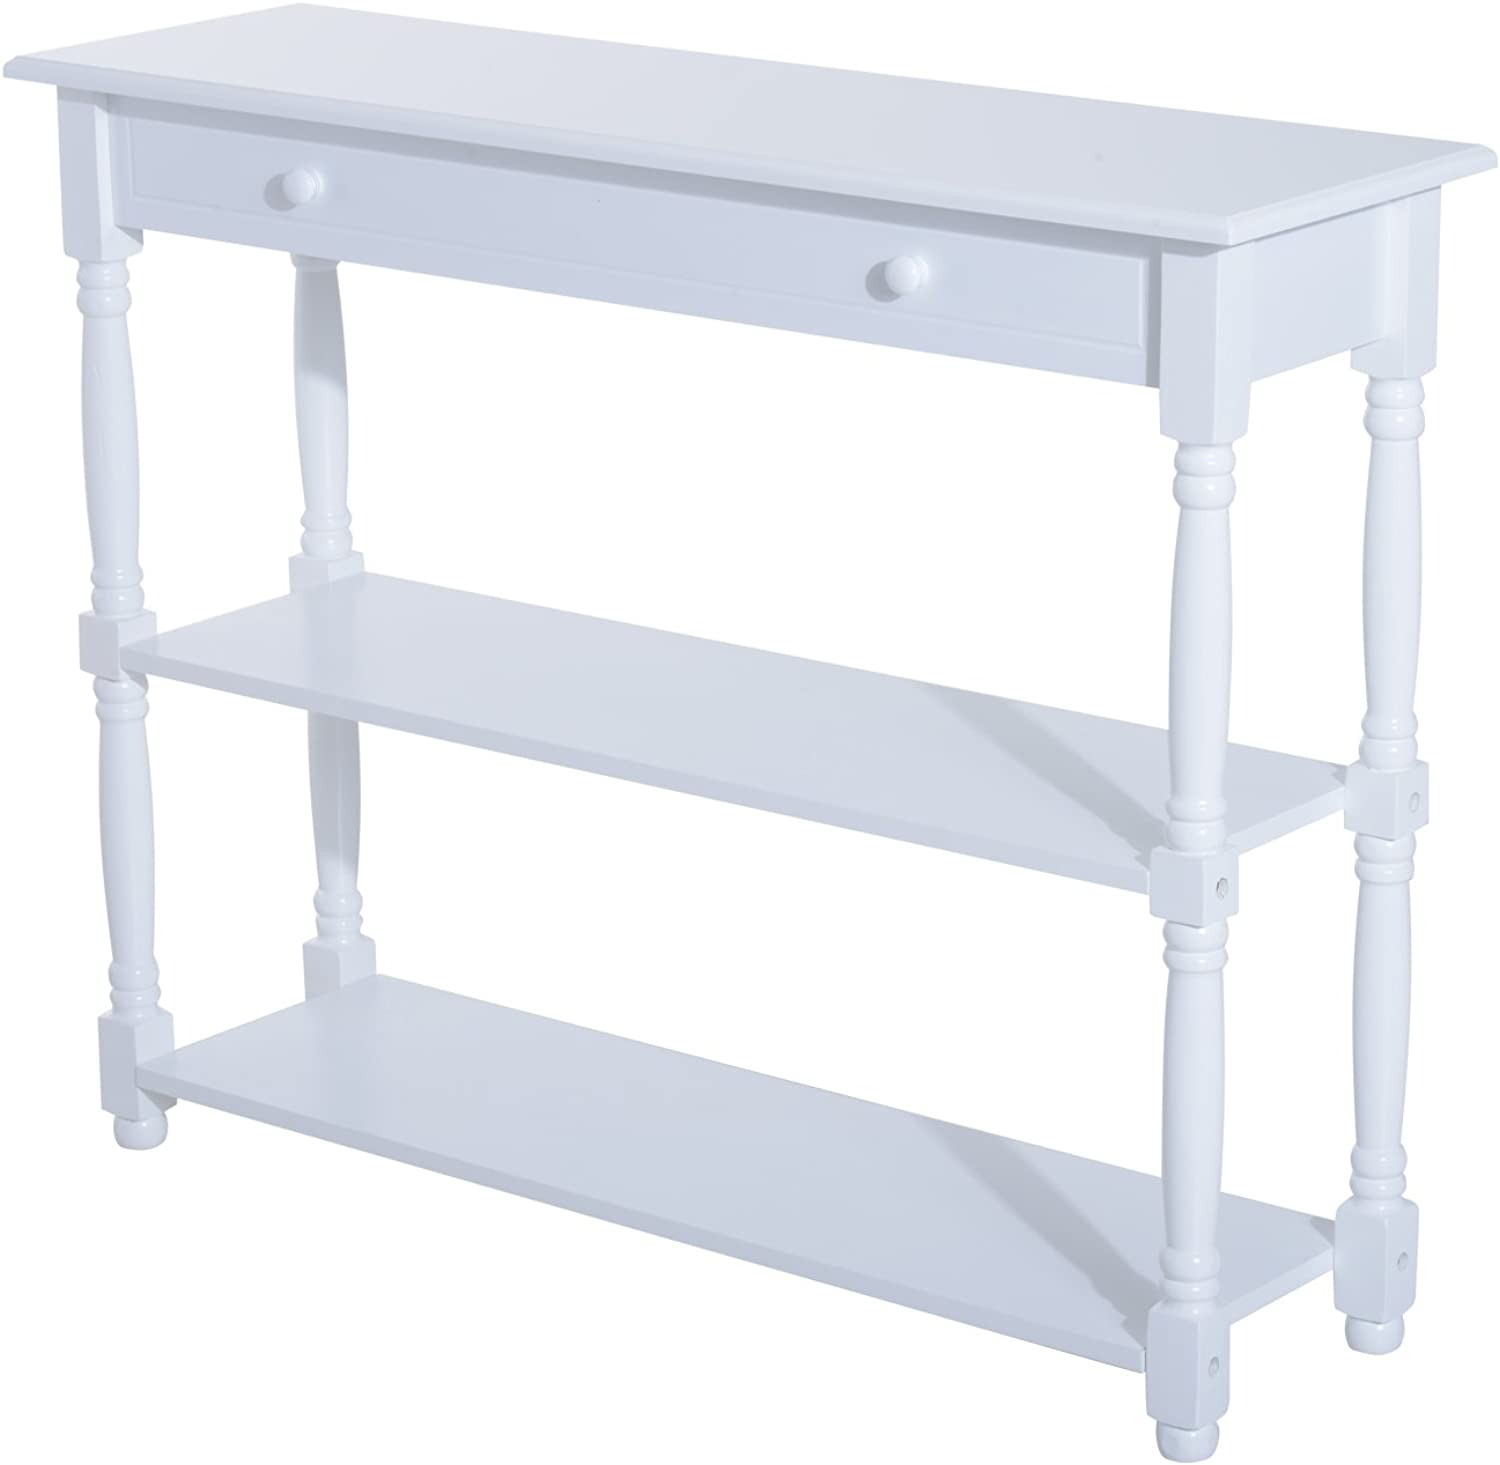 Festnight Entryway Accent Console Sofa Table Pine Wood, White